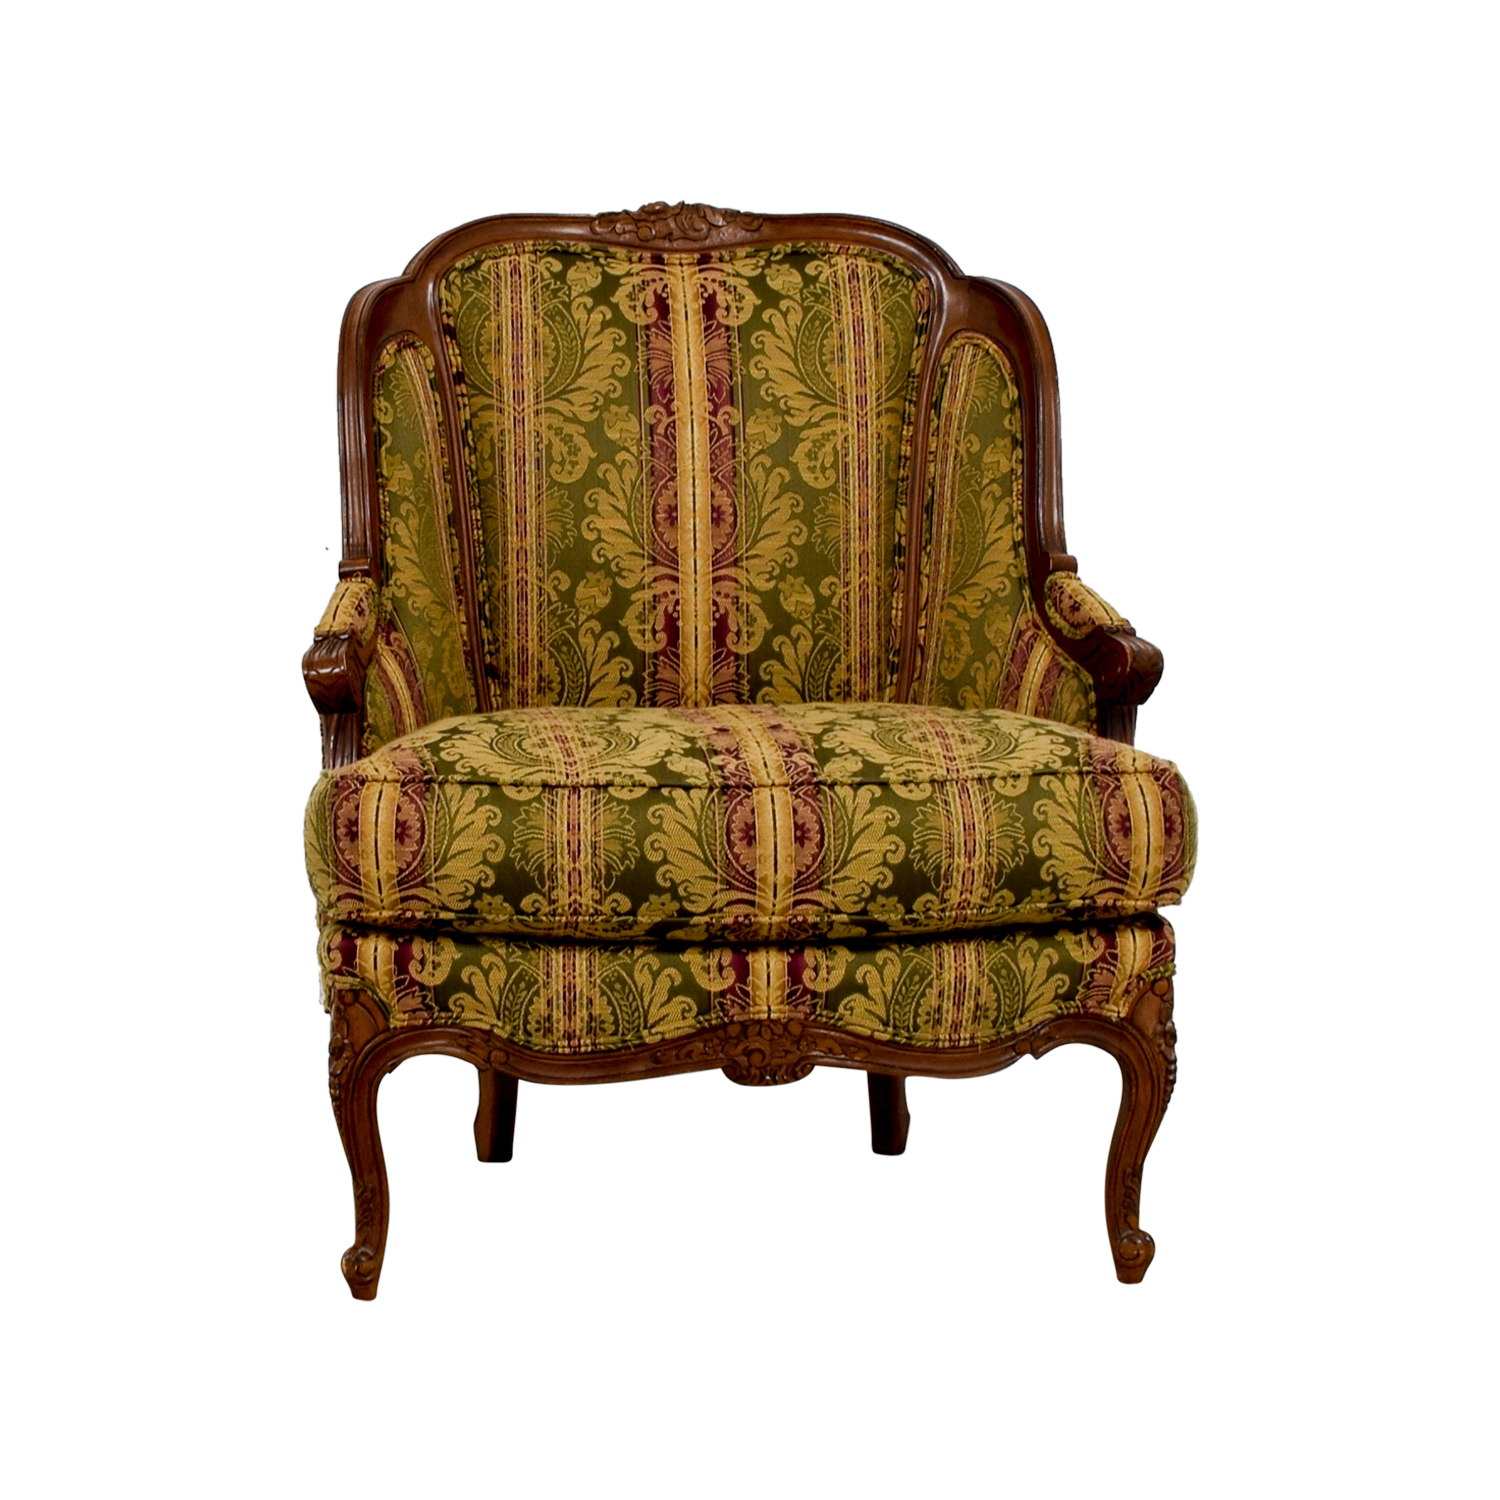 drexel heritage chairs wwe tables ladders and 65 off bergere green gold burgundy chair accent